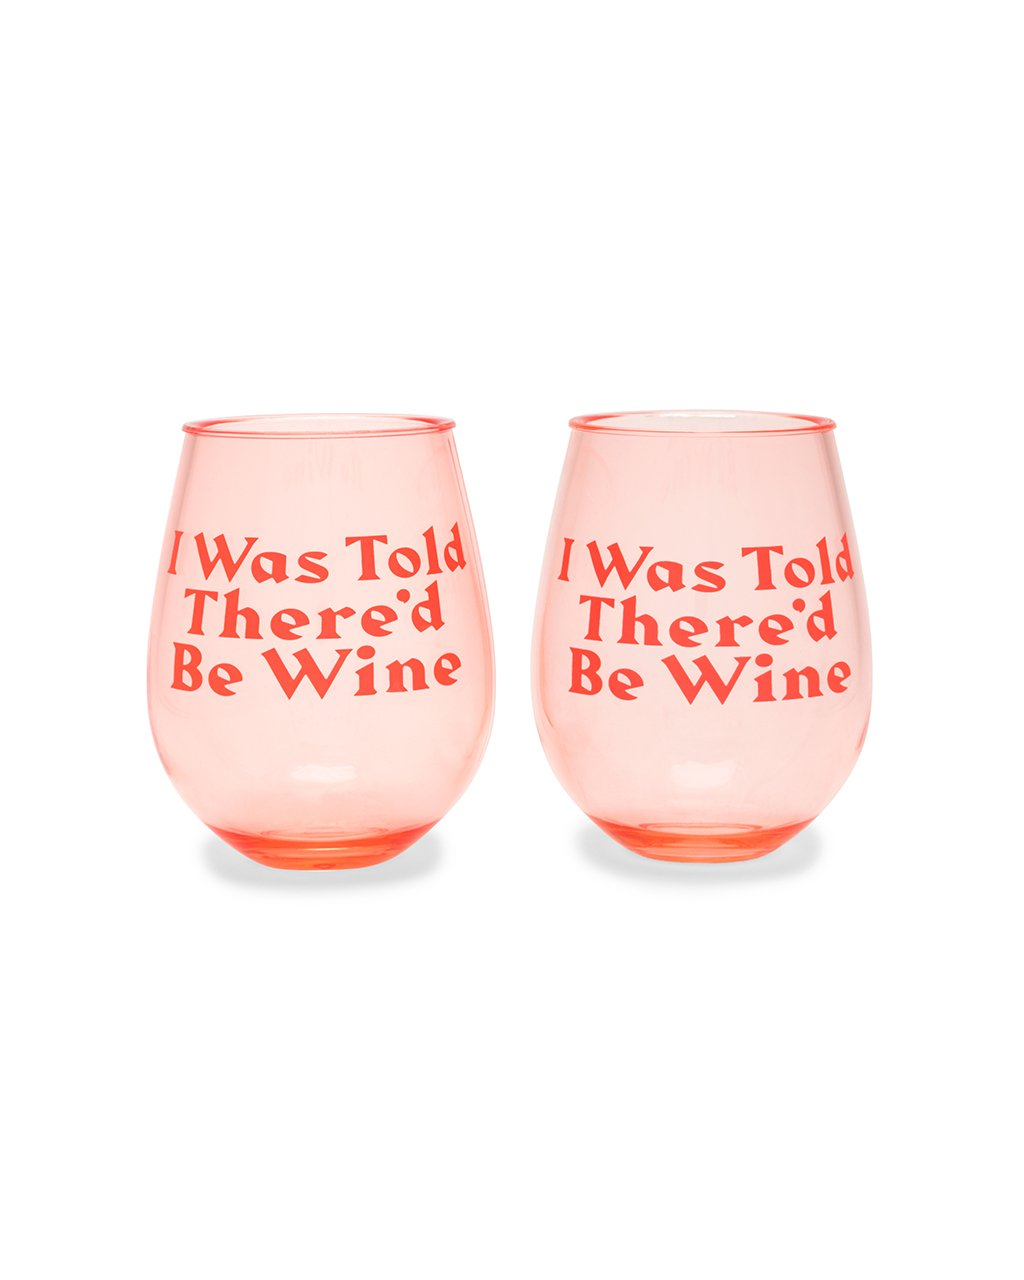 These Party On Wine Glasses come in translucent pink, with 'I Was Told There'd Be Wine' printed on the side.